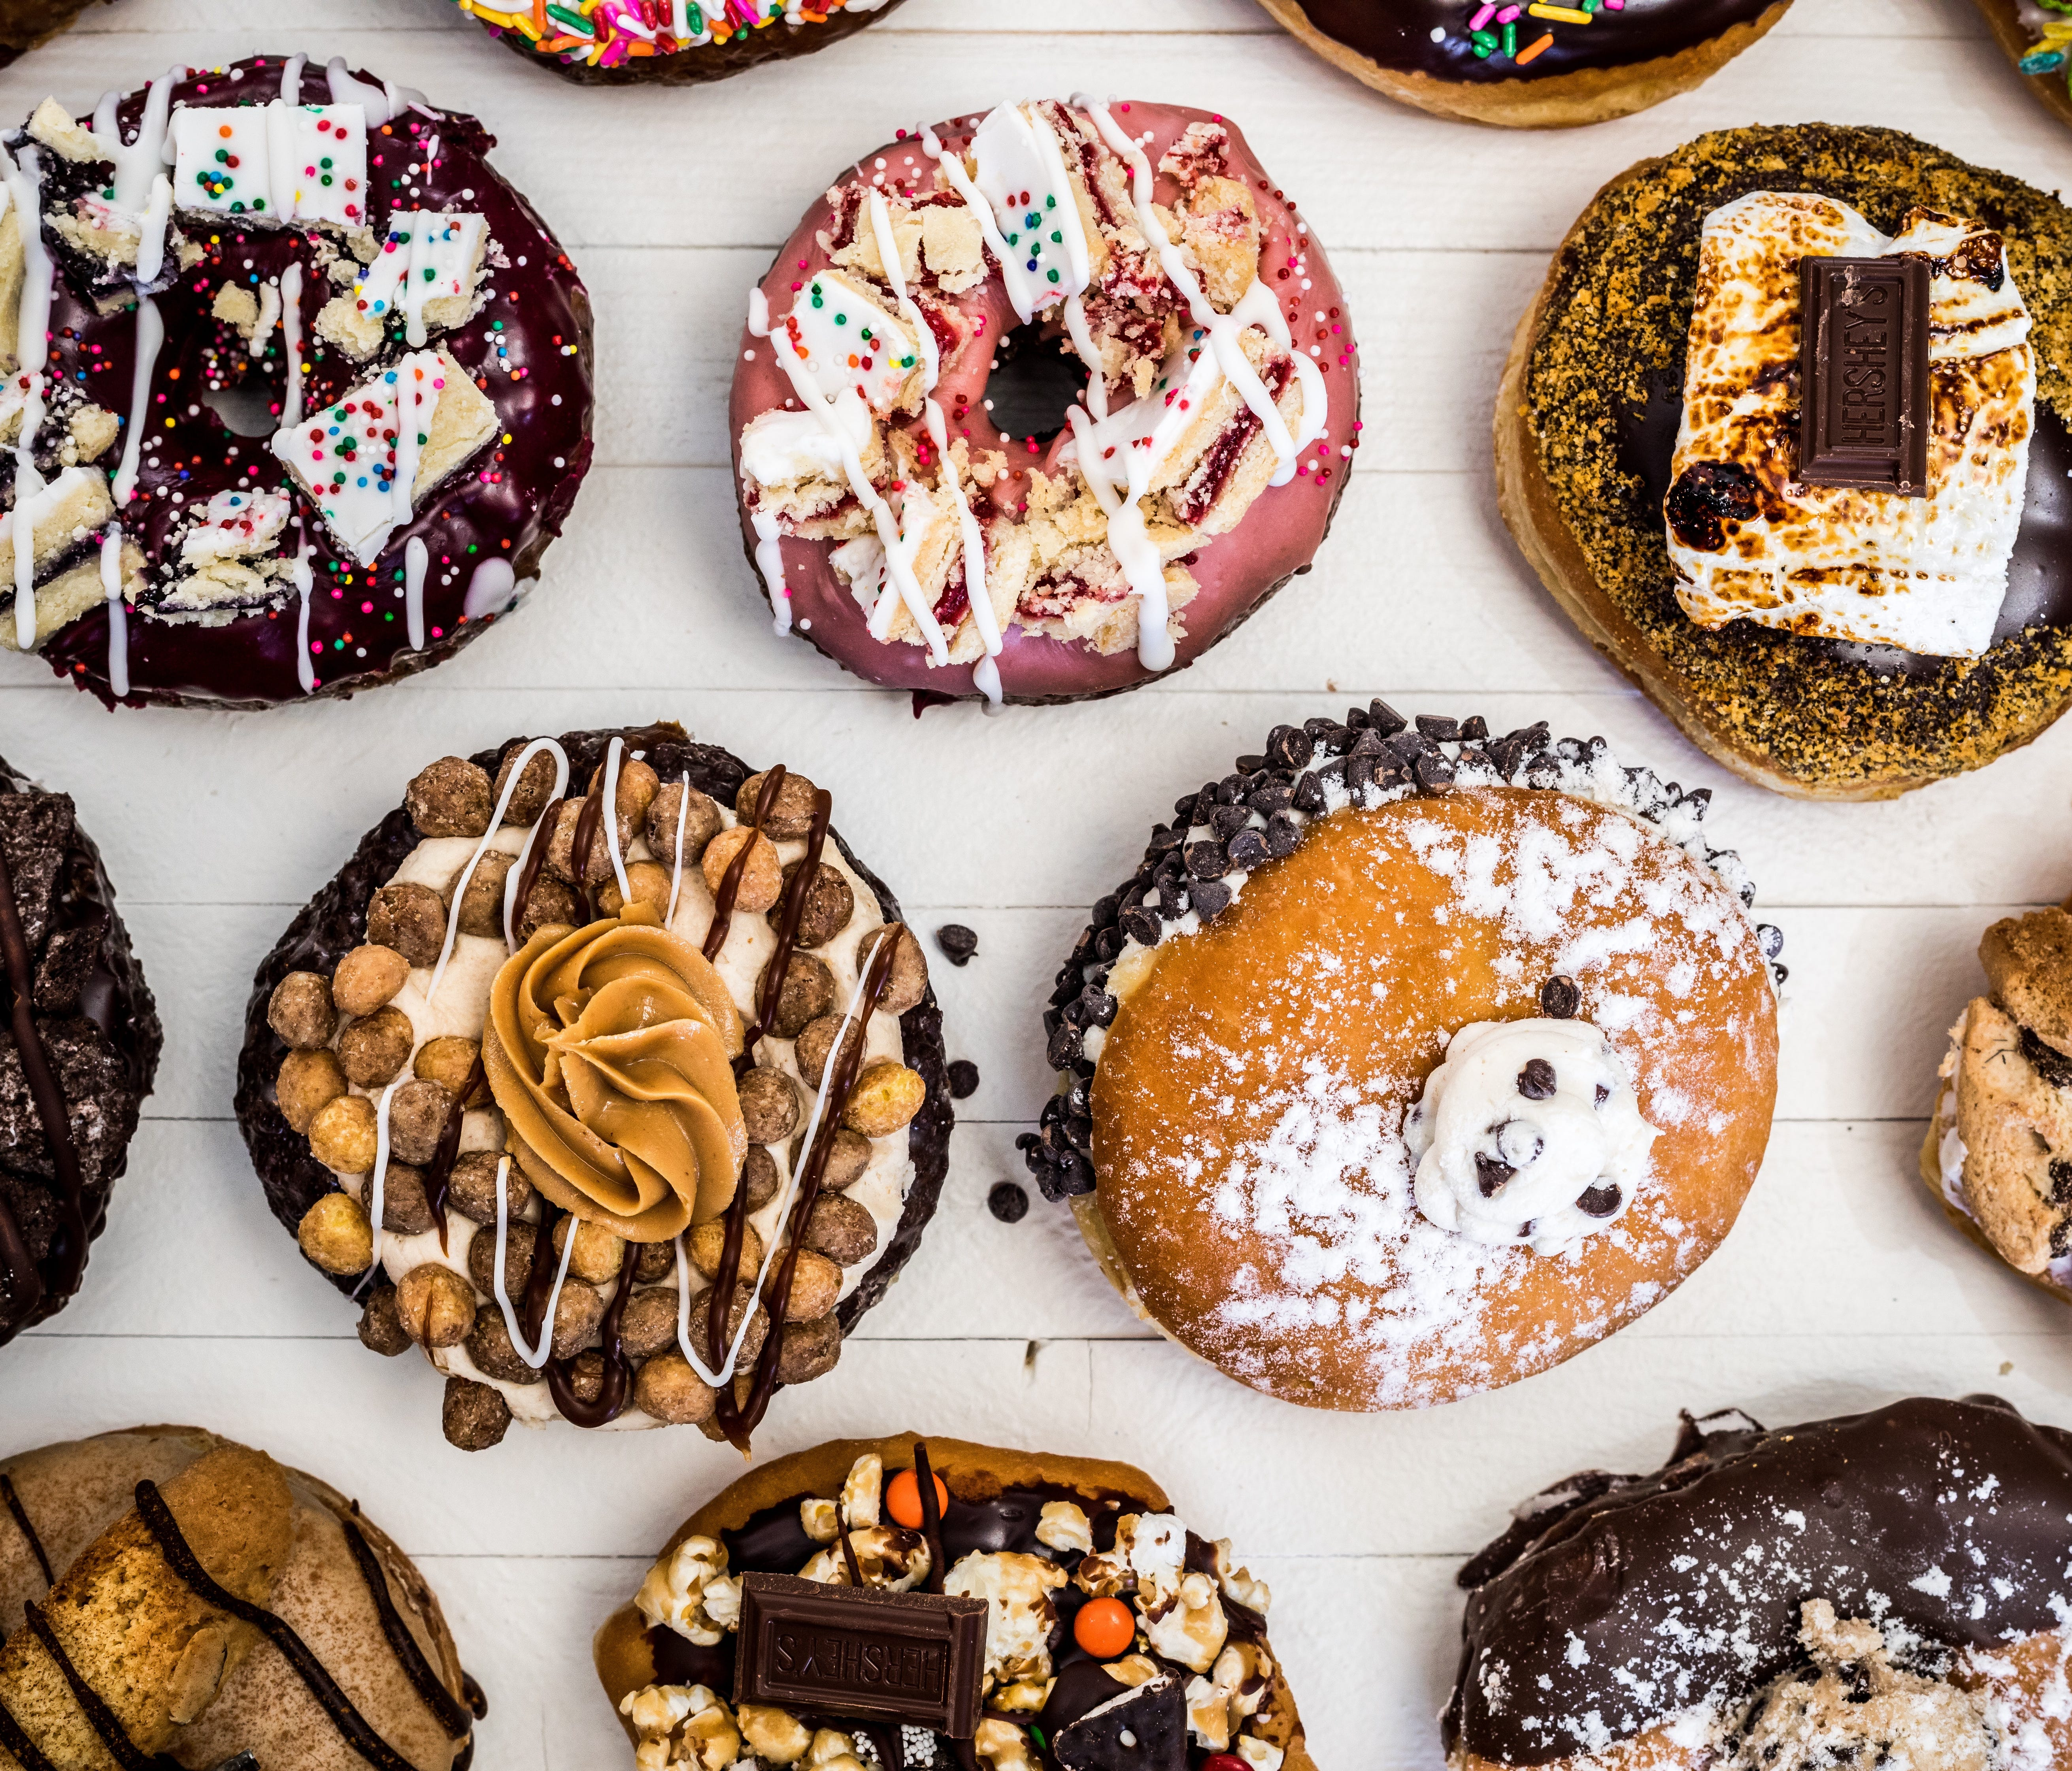 At four Connecticut locations, Donut Crazy crafts more than 20 over-the-top takes on doughnuts with toppings such as chopped peaches rolled in sugar or a piece of Double Bubble gum.